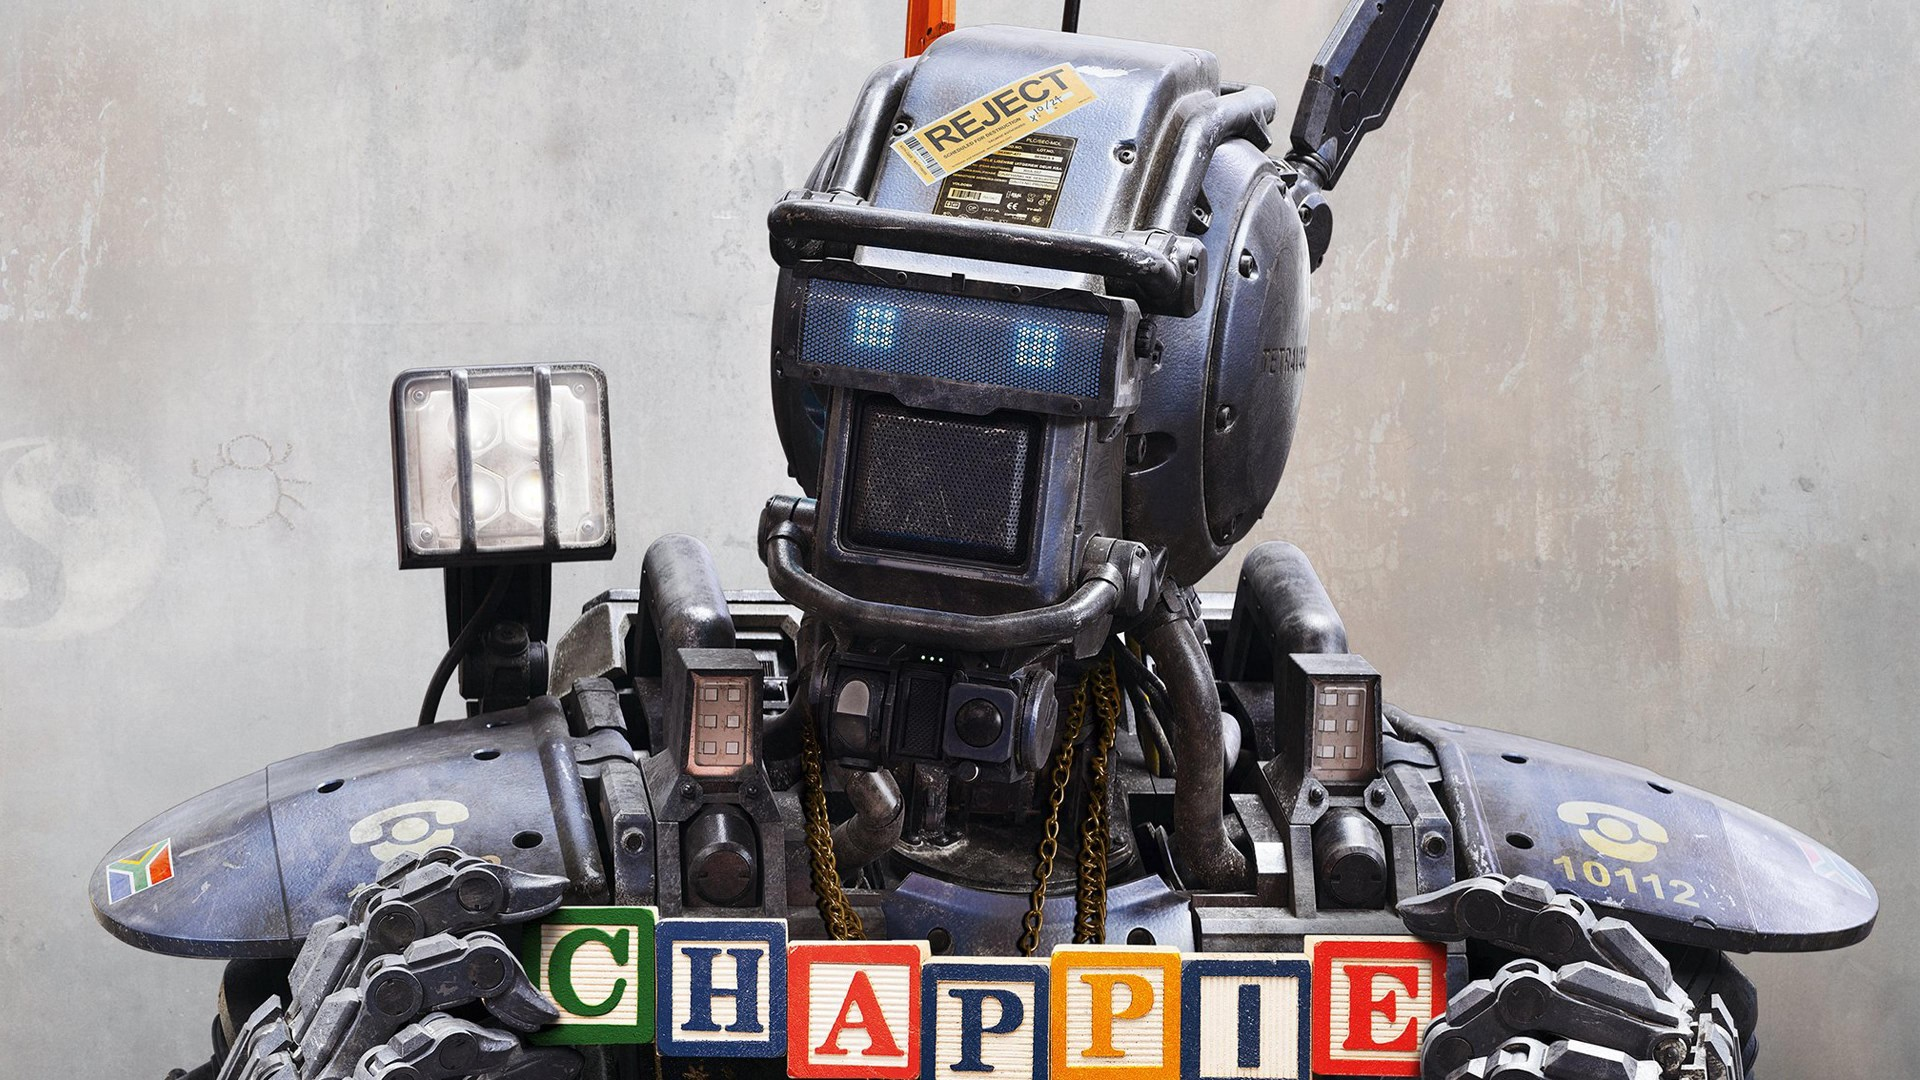 Chappie, Best Movies of 2015, robot, police, wallpaper, gun (horizontal)